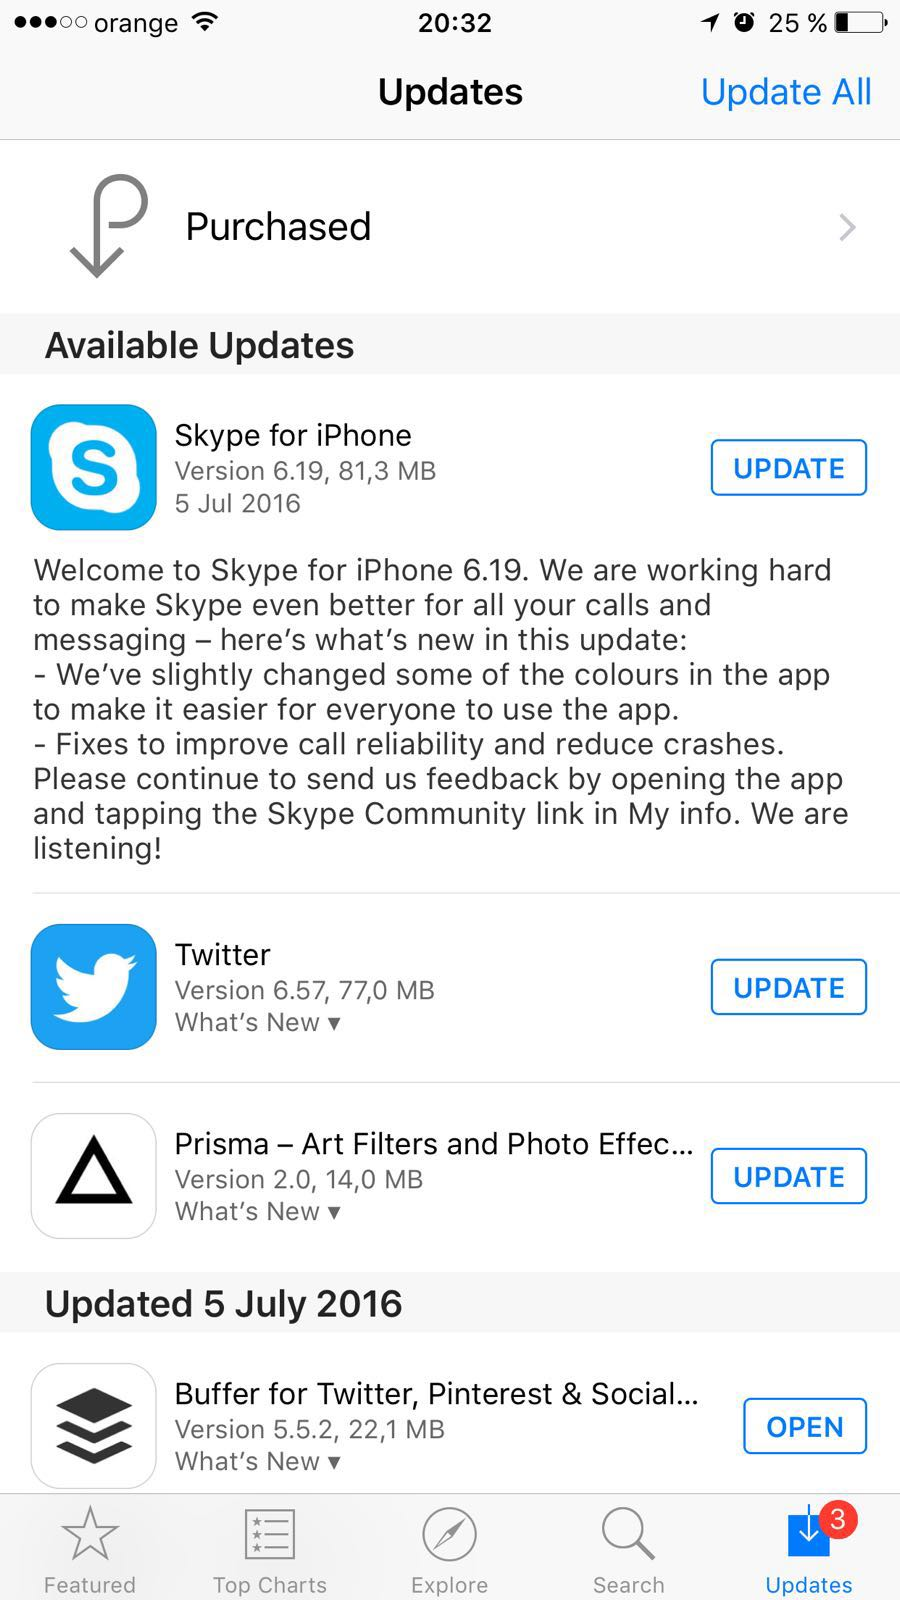 Microsoft Updates Skype for iPhone with Improved UI